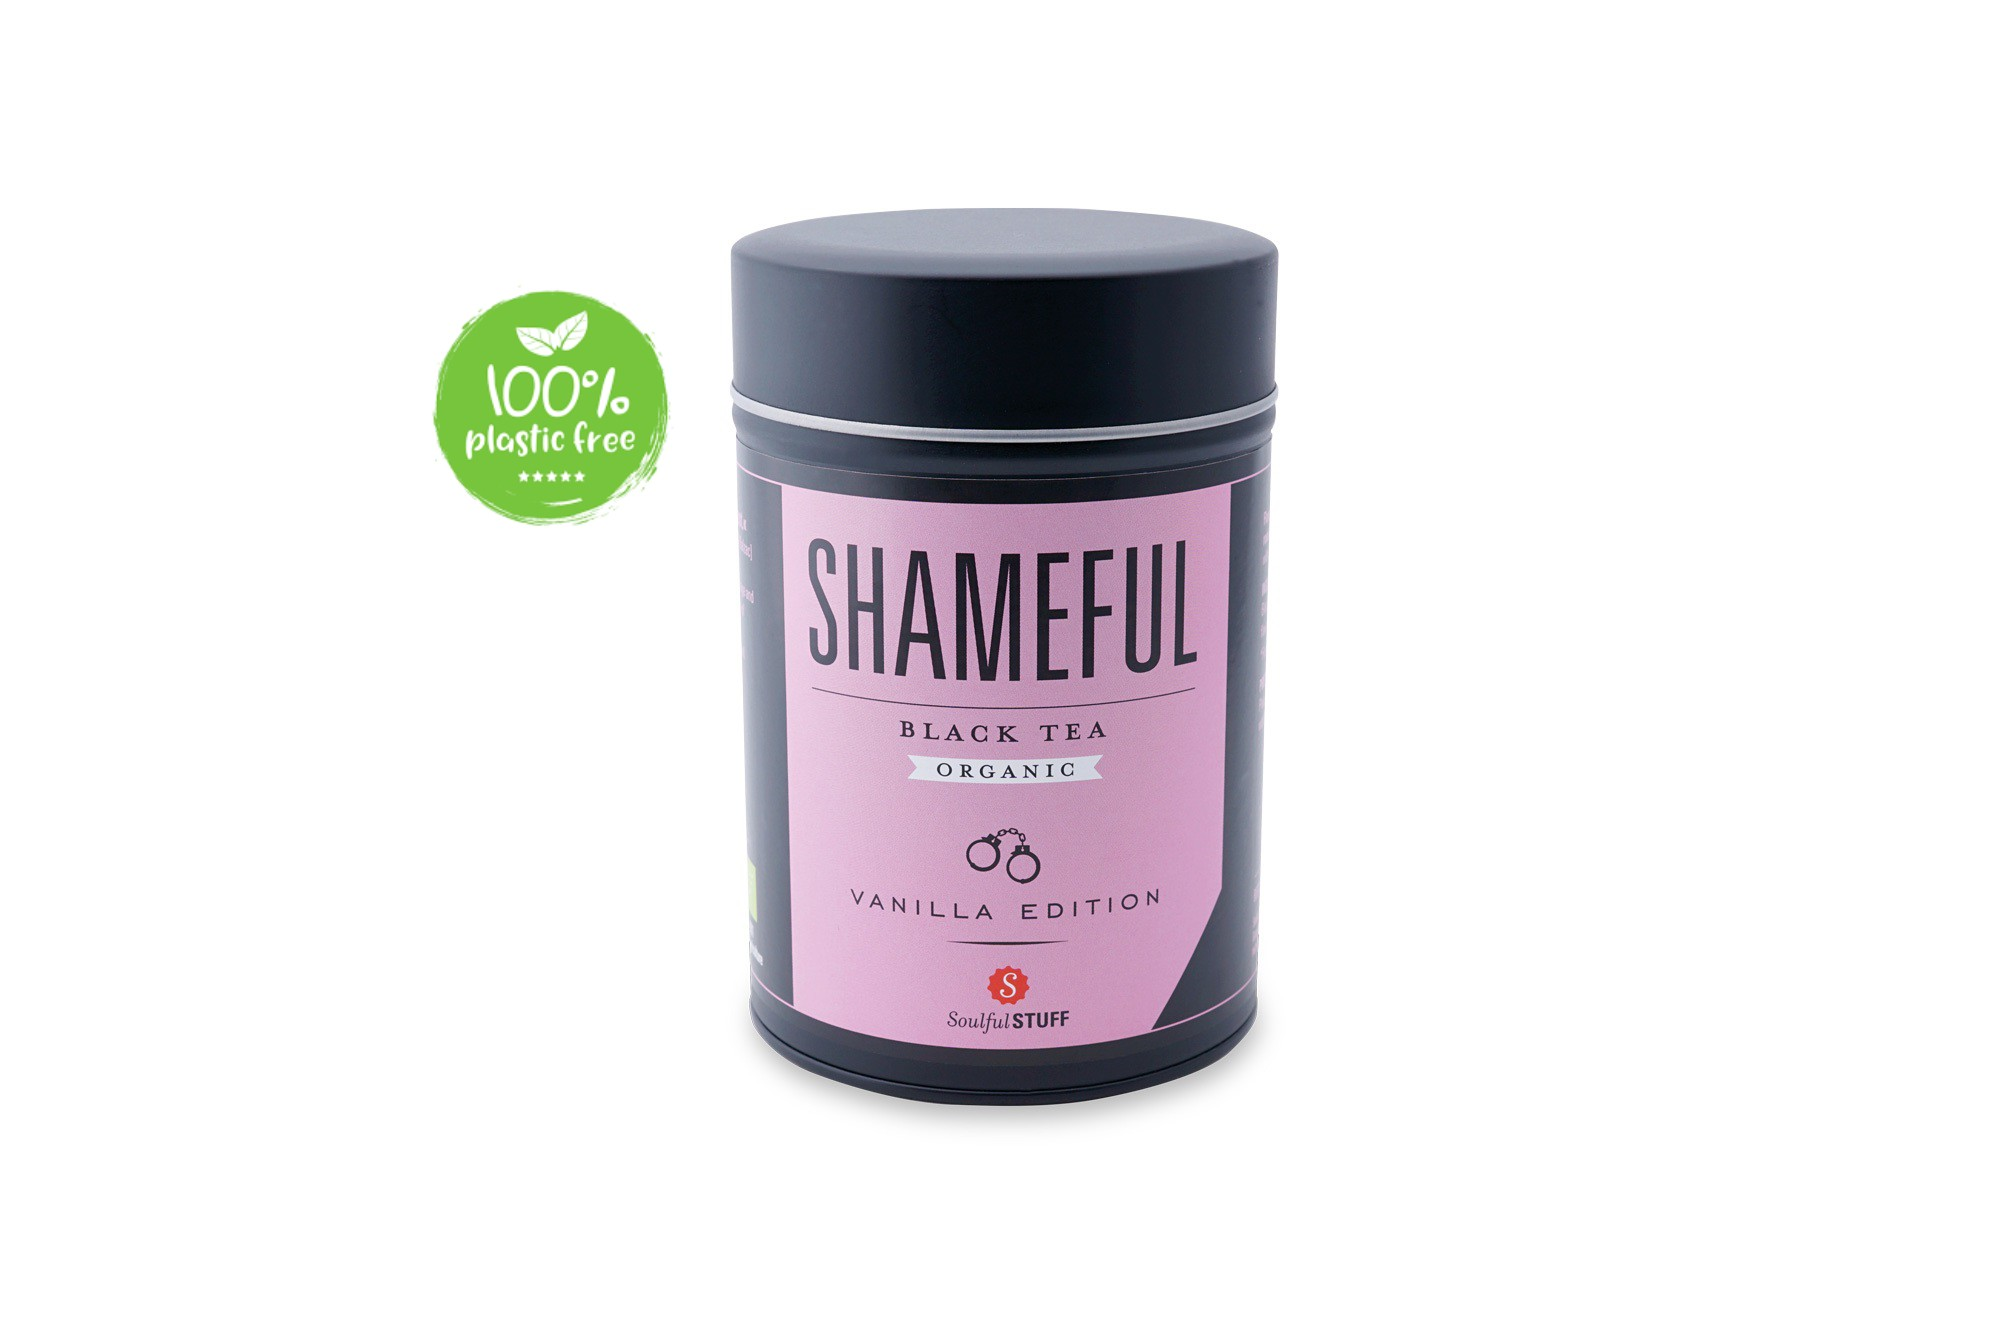 Shameful Black Tea Organic blik 120gr. Intertee